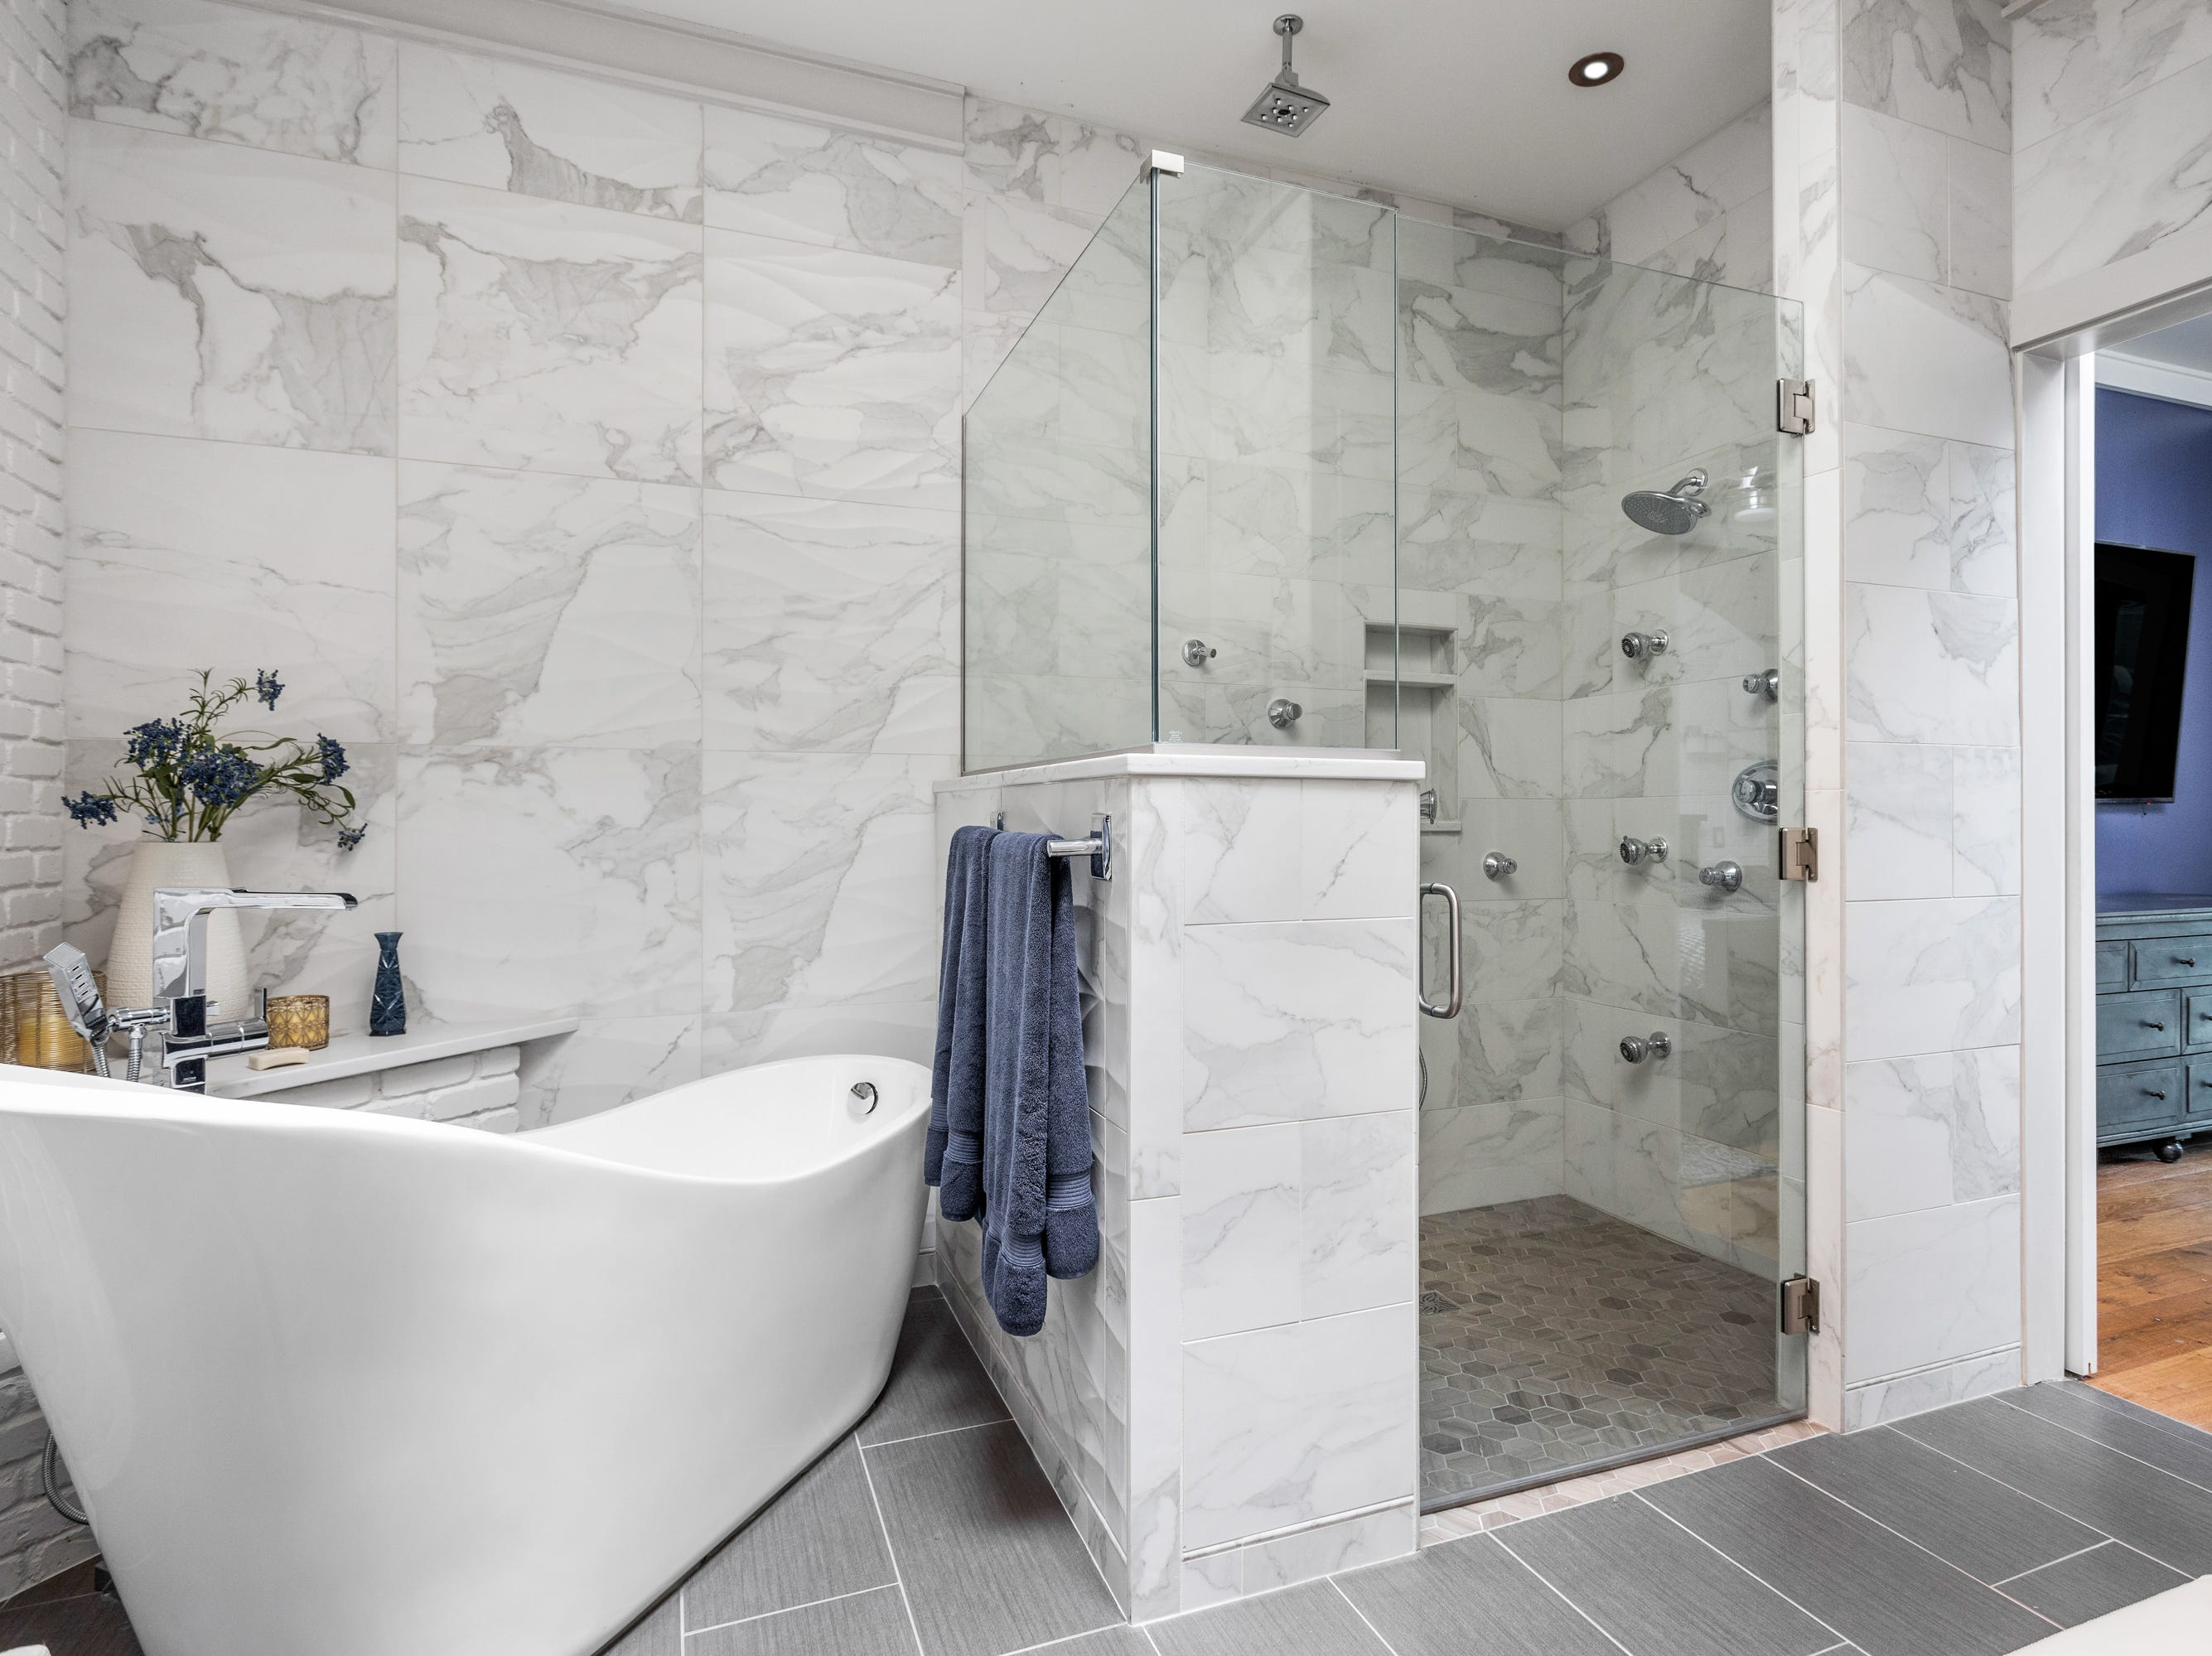 The owners kept the extra-tall shower in the bath, that when the residence was a hotel made it a favorite place to stay for Shaquille O'Neal.